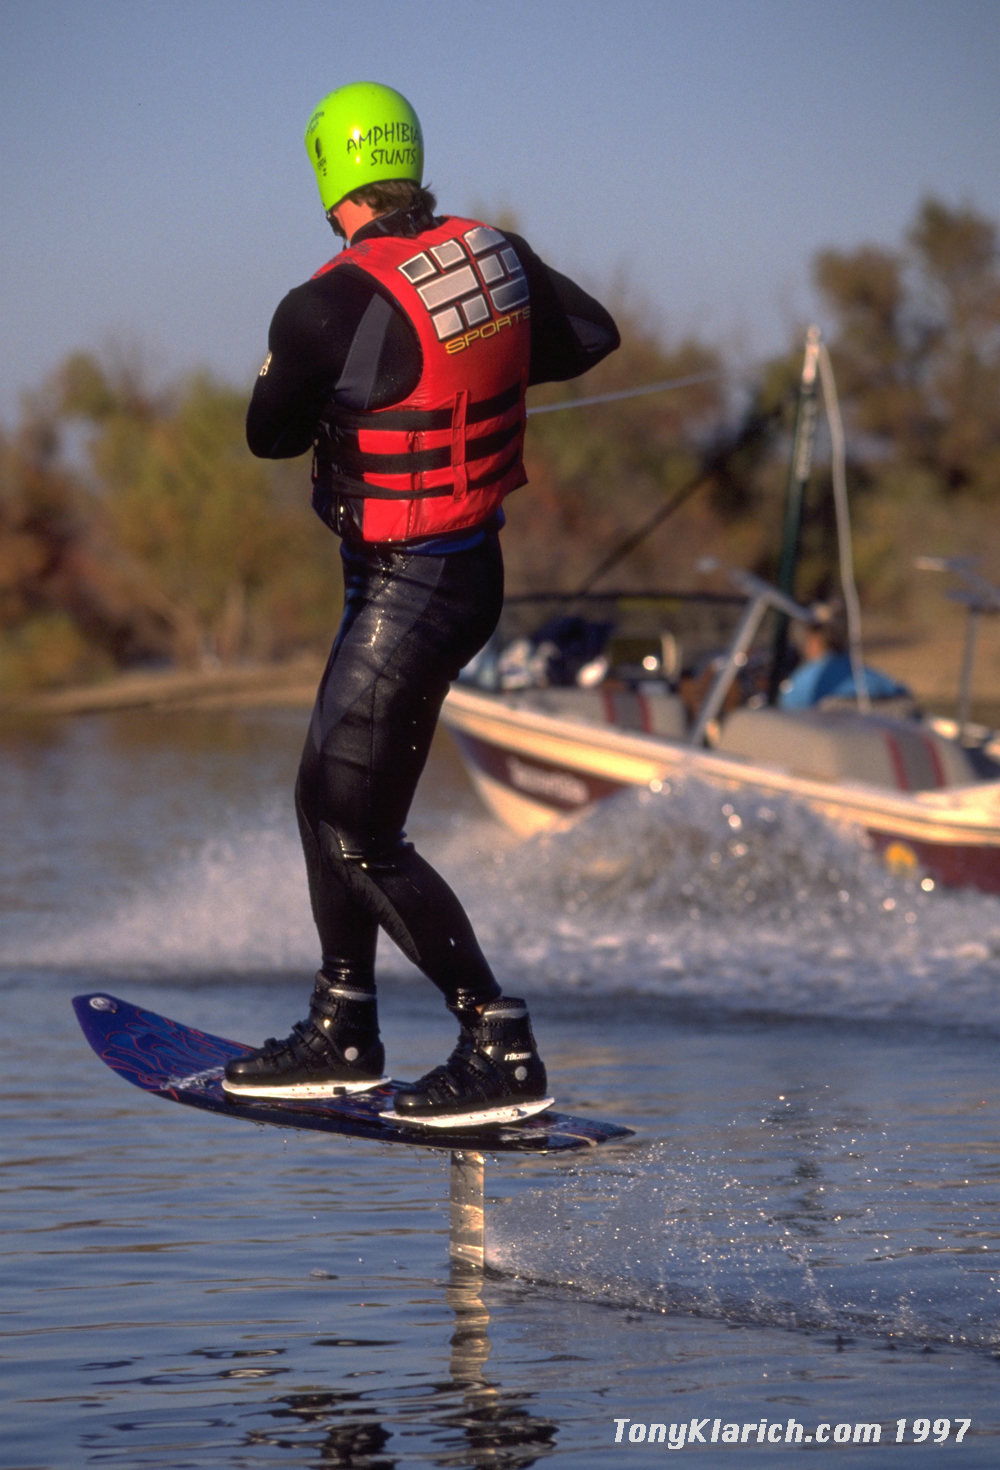 1997-air-board-tony-klarich-wakeboard-hydrofoil-hyperlite